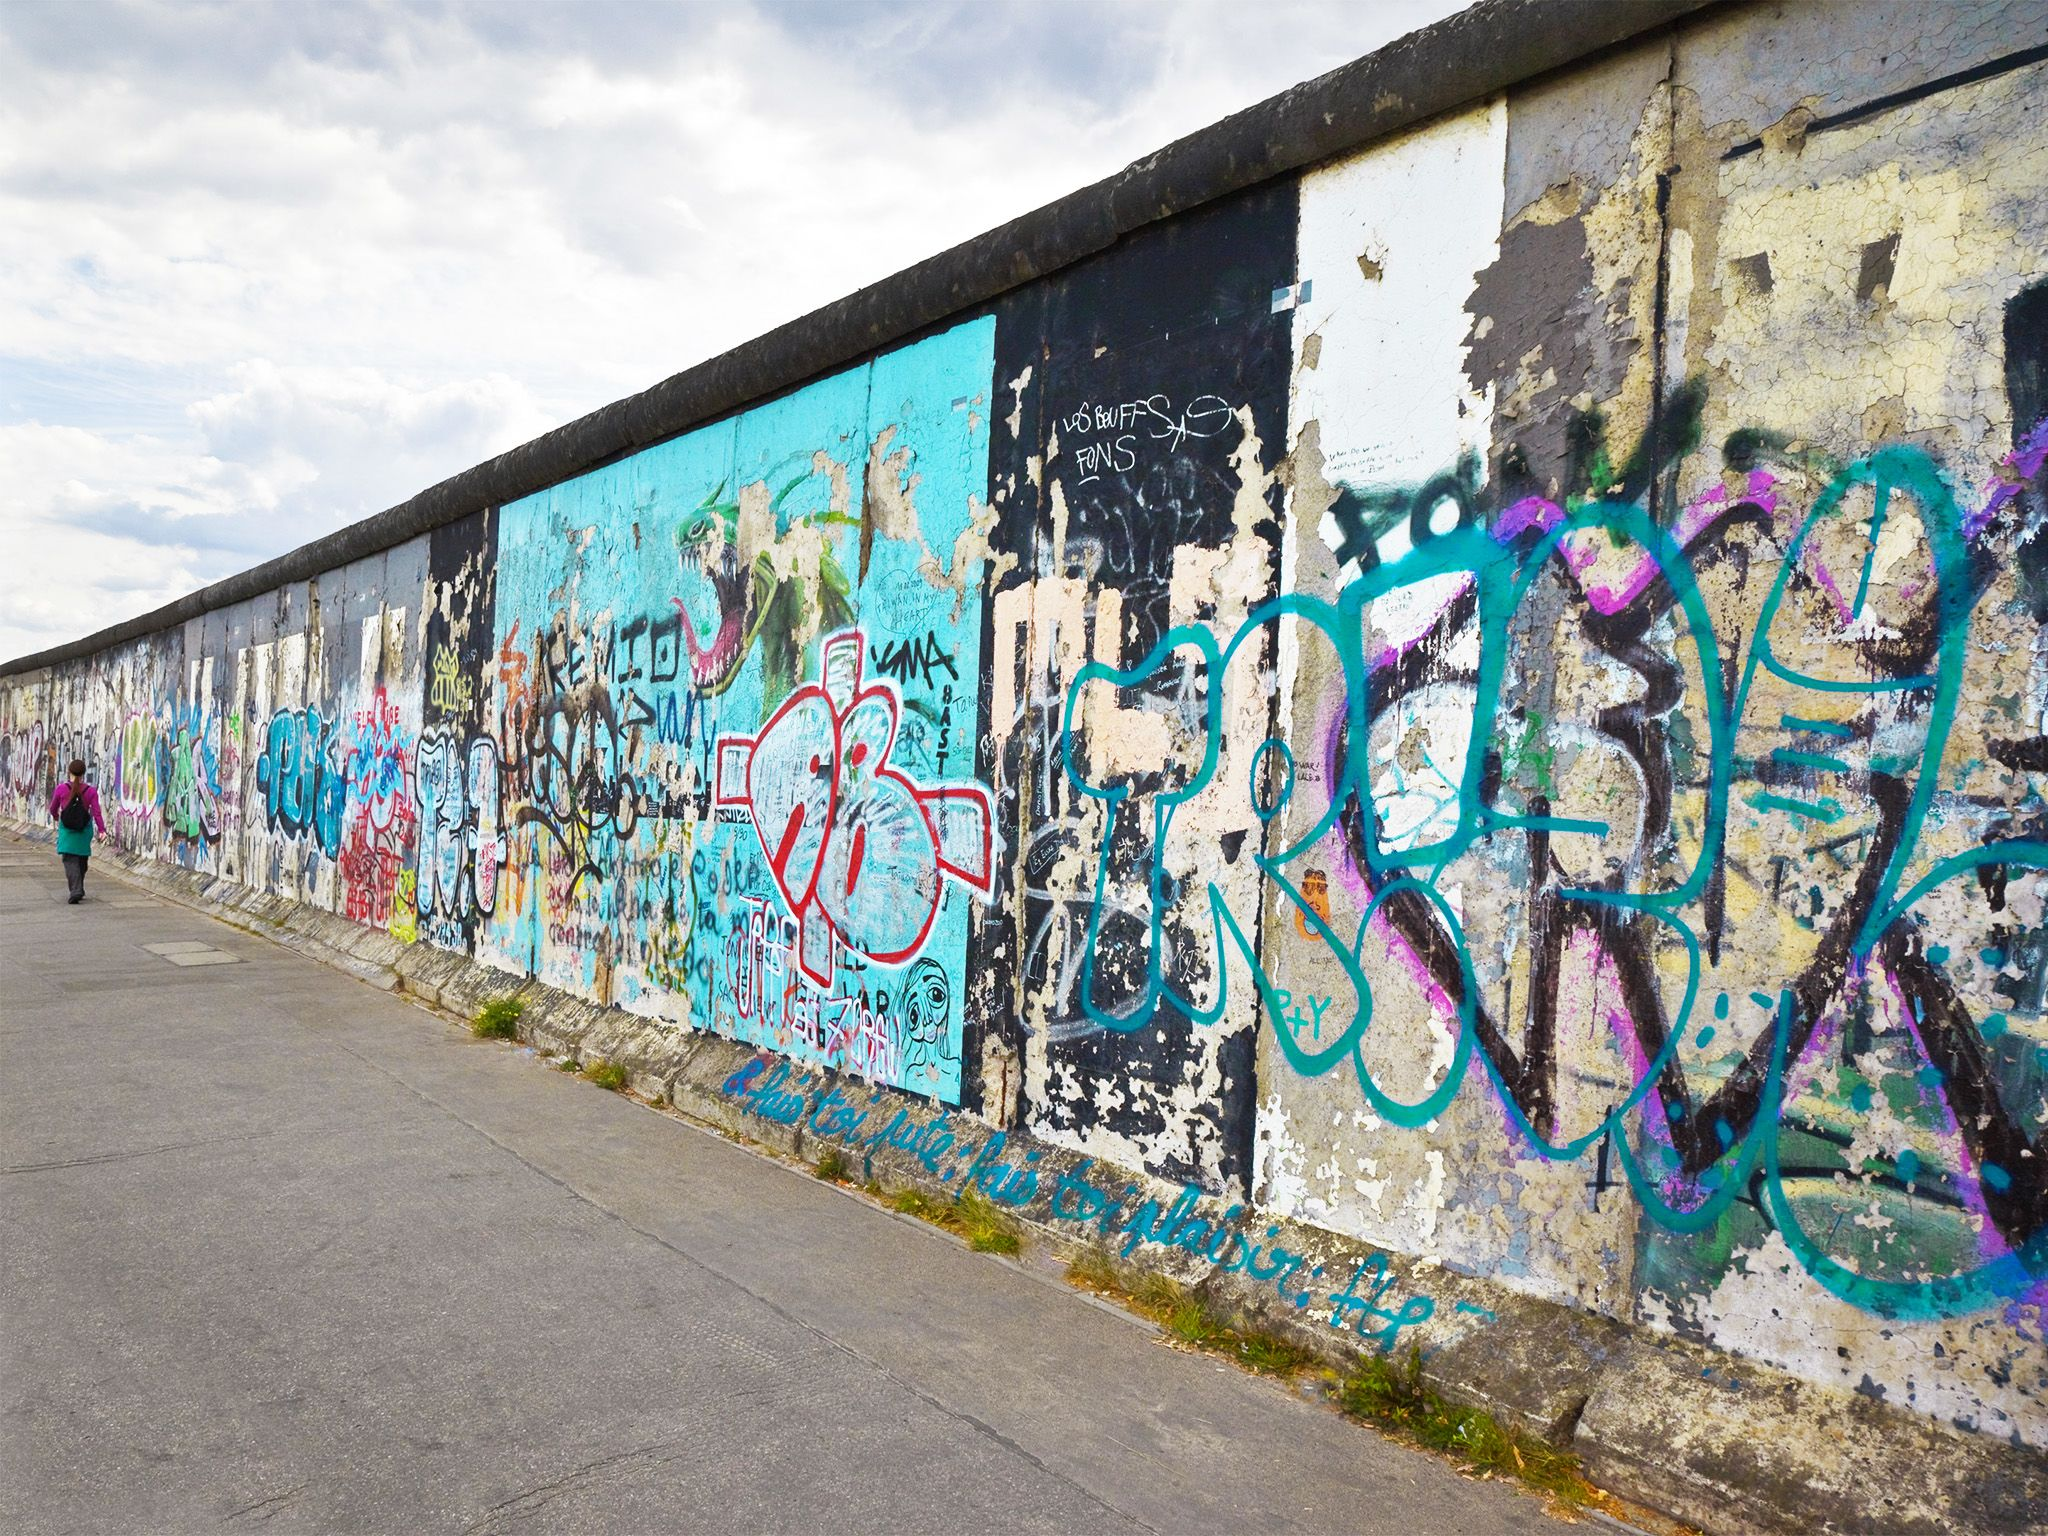 Berlin wall. This image is from Hasselhoff vs. The Berlin Wall. [Dagens foto - november 2014]